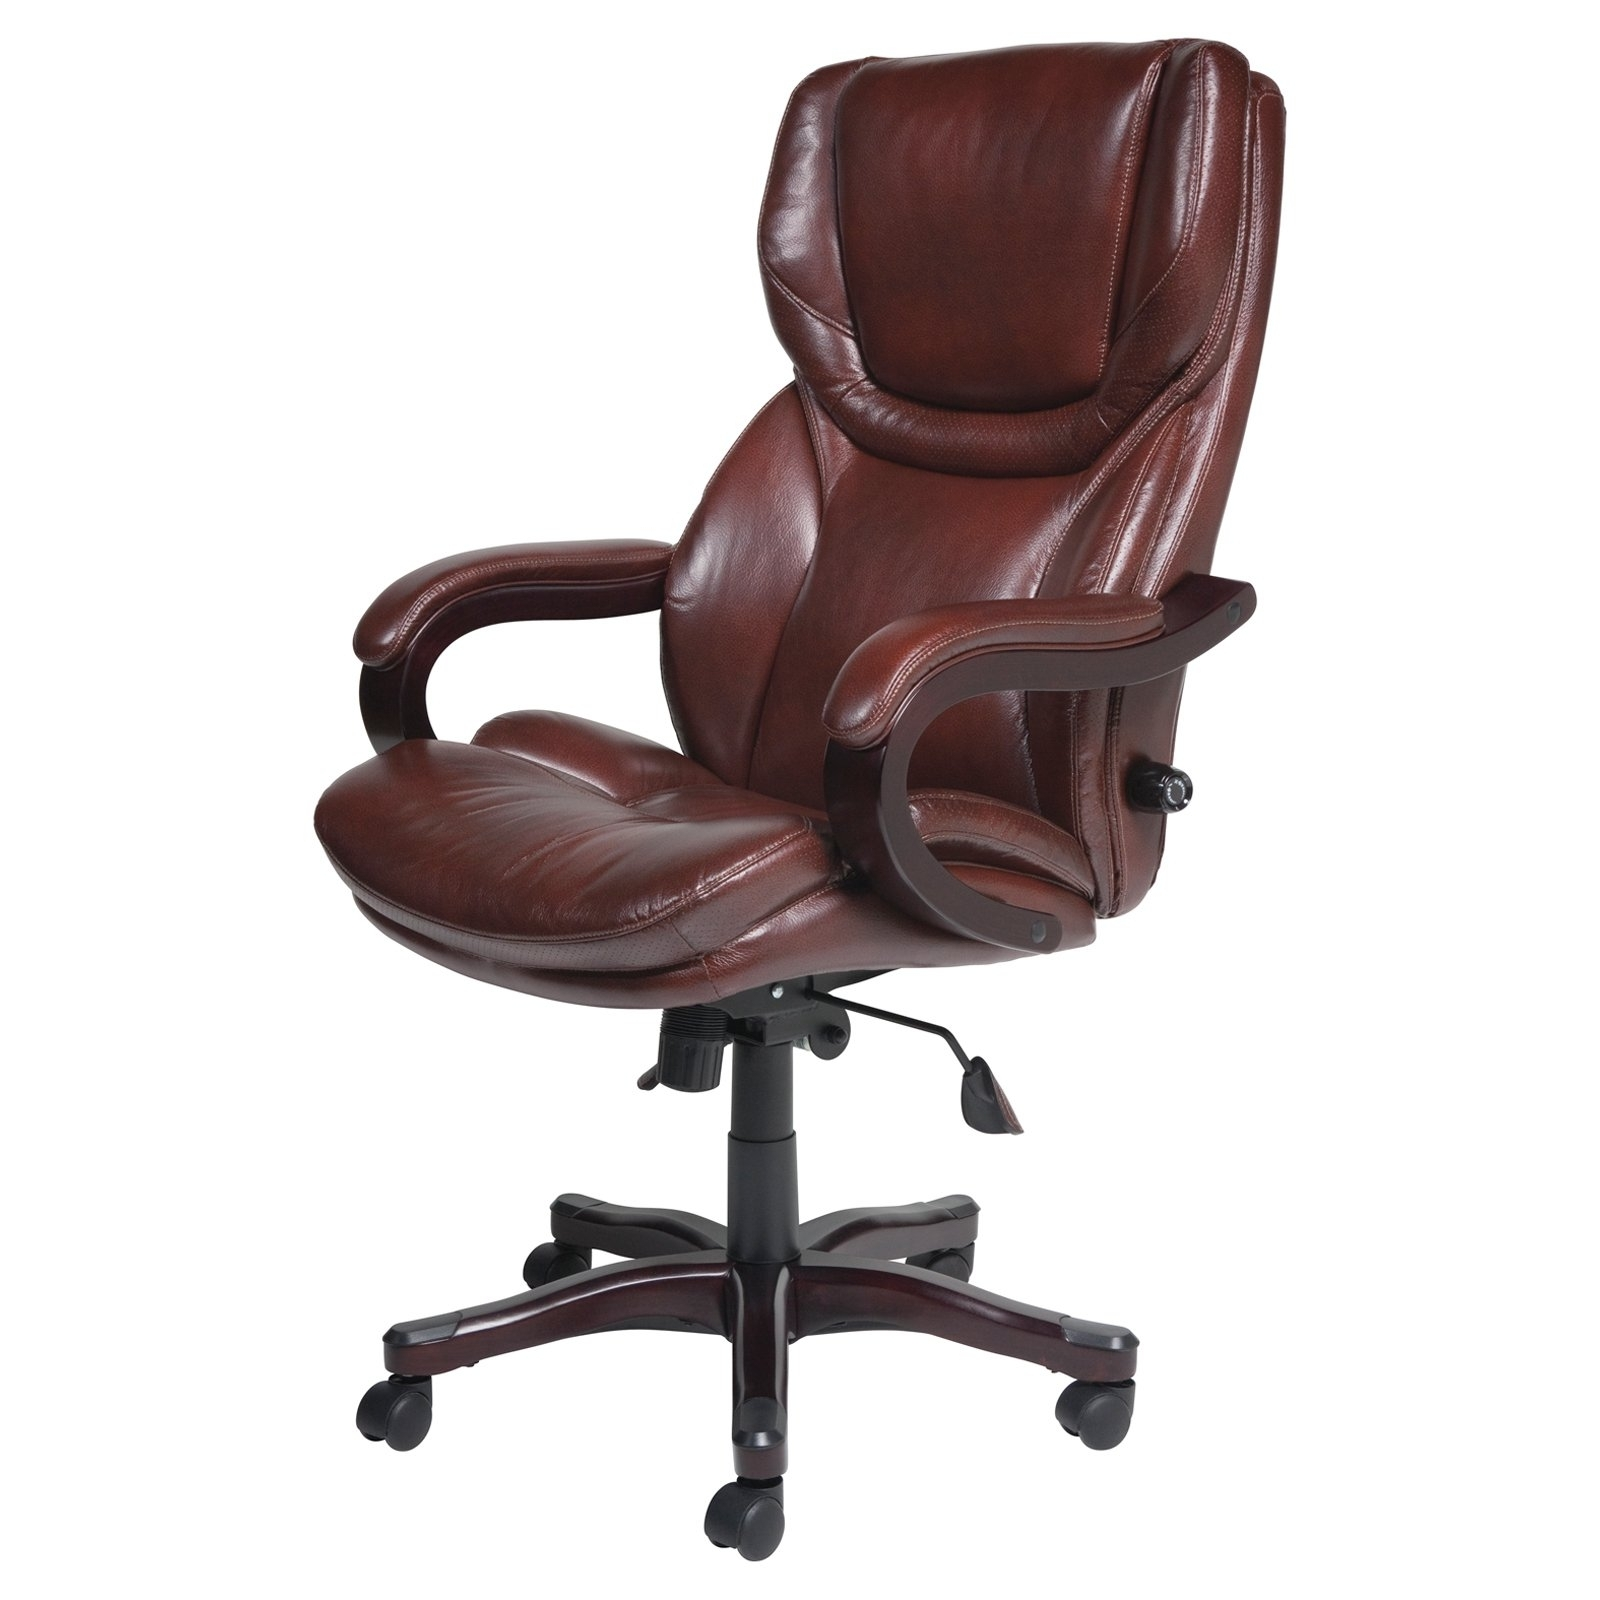 Brown Leather Executive Office Chairs Pertaining To Fashionable Chair : Ergonomic Black Leather Executive Office Chair Verona (View 4 of 20)